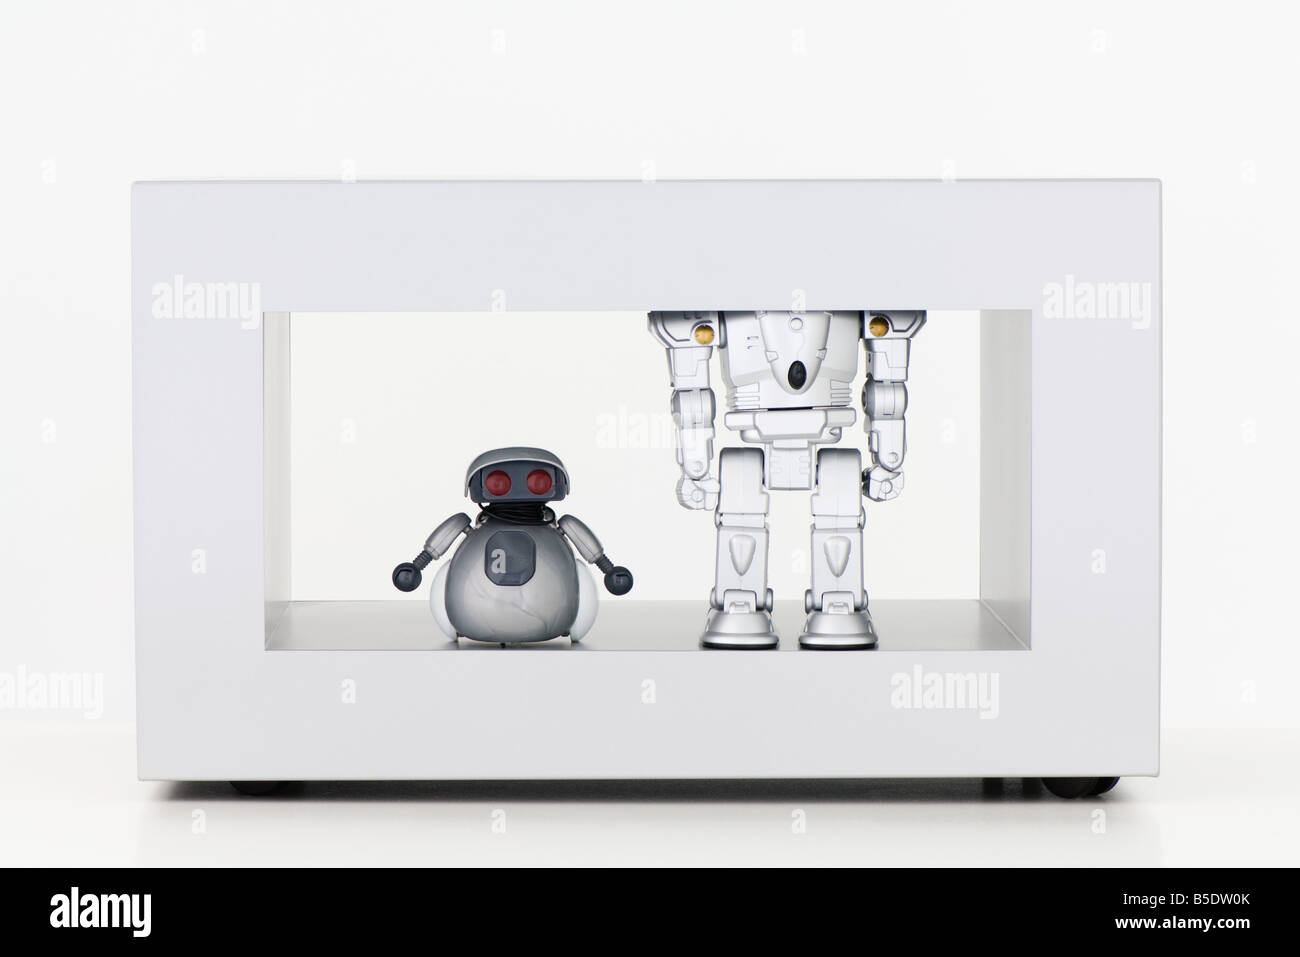 Toy robots standing side by side, one short and the other tall - Stock Image